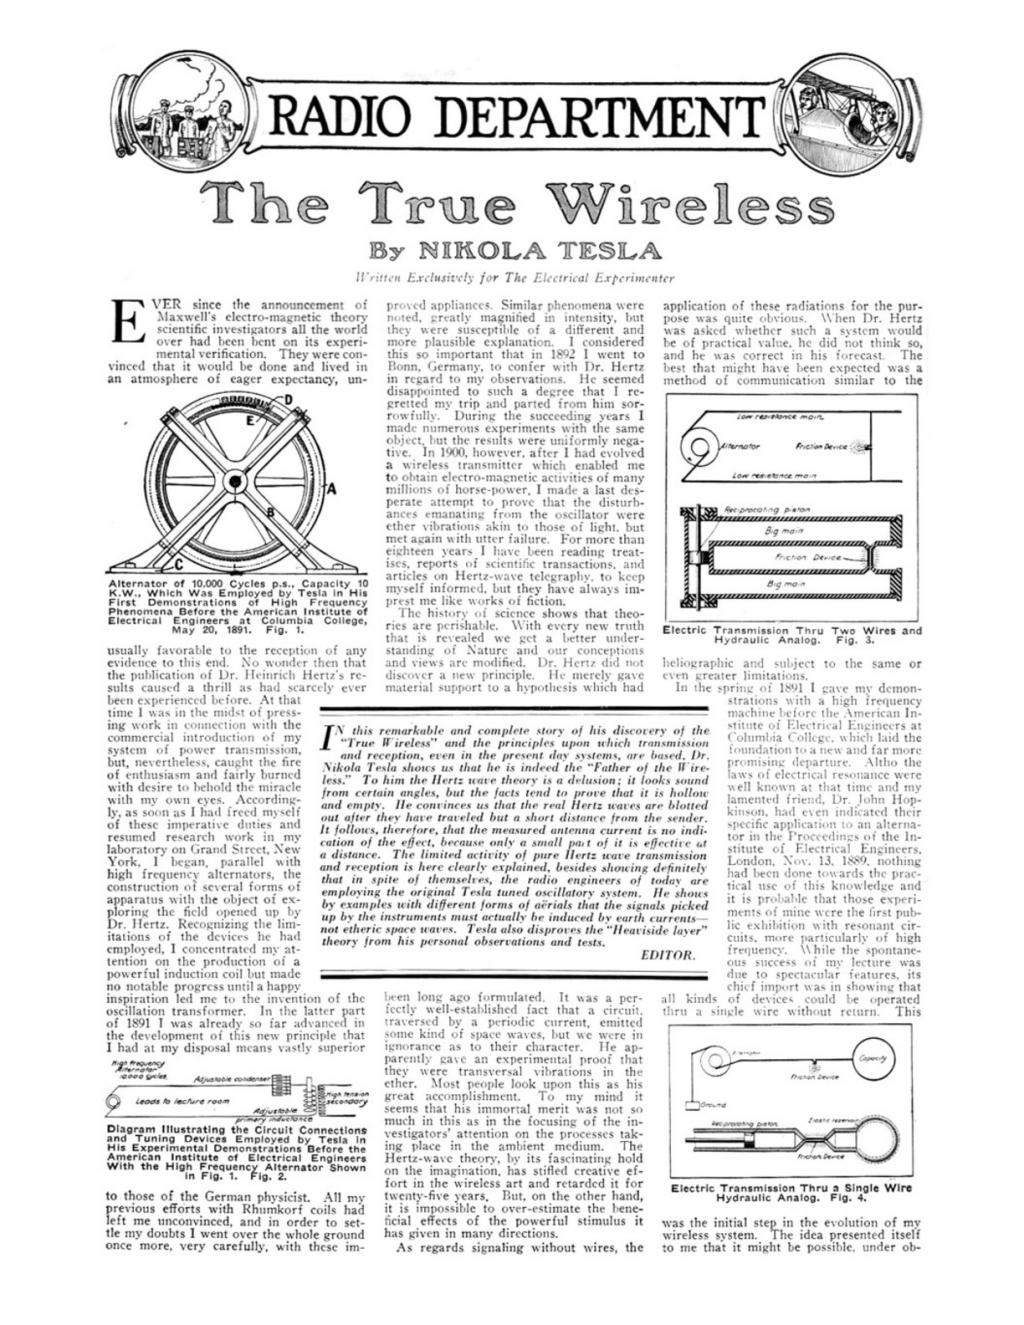 Preview of The True Wireless article